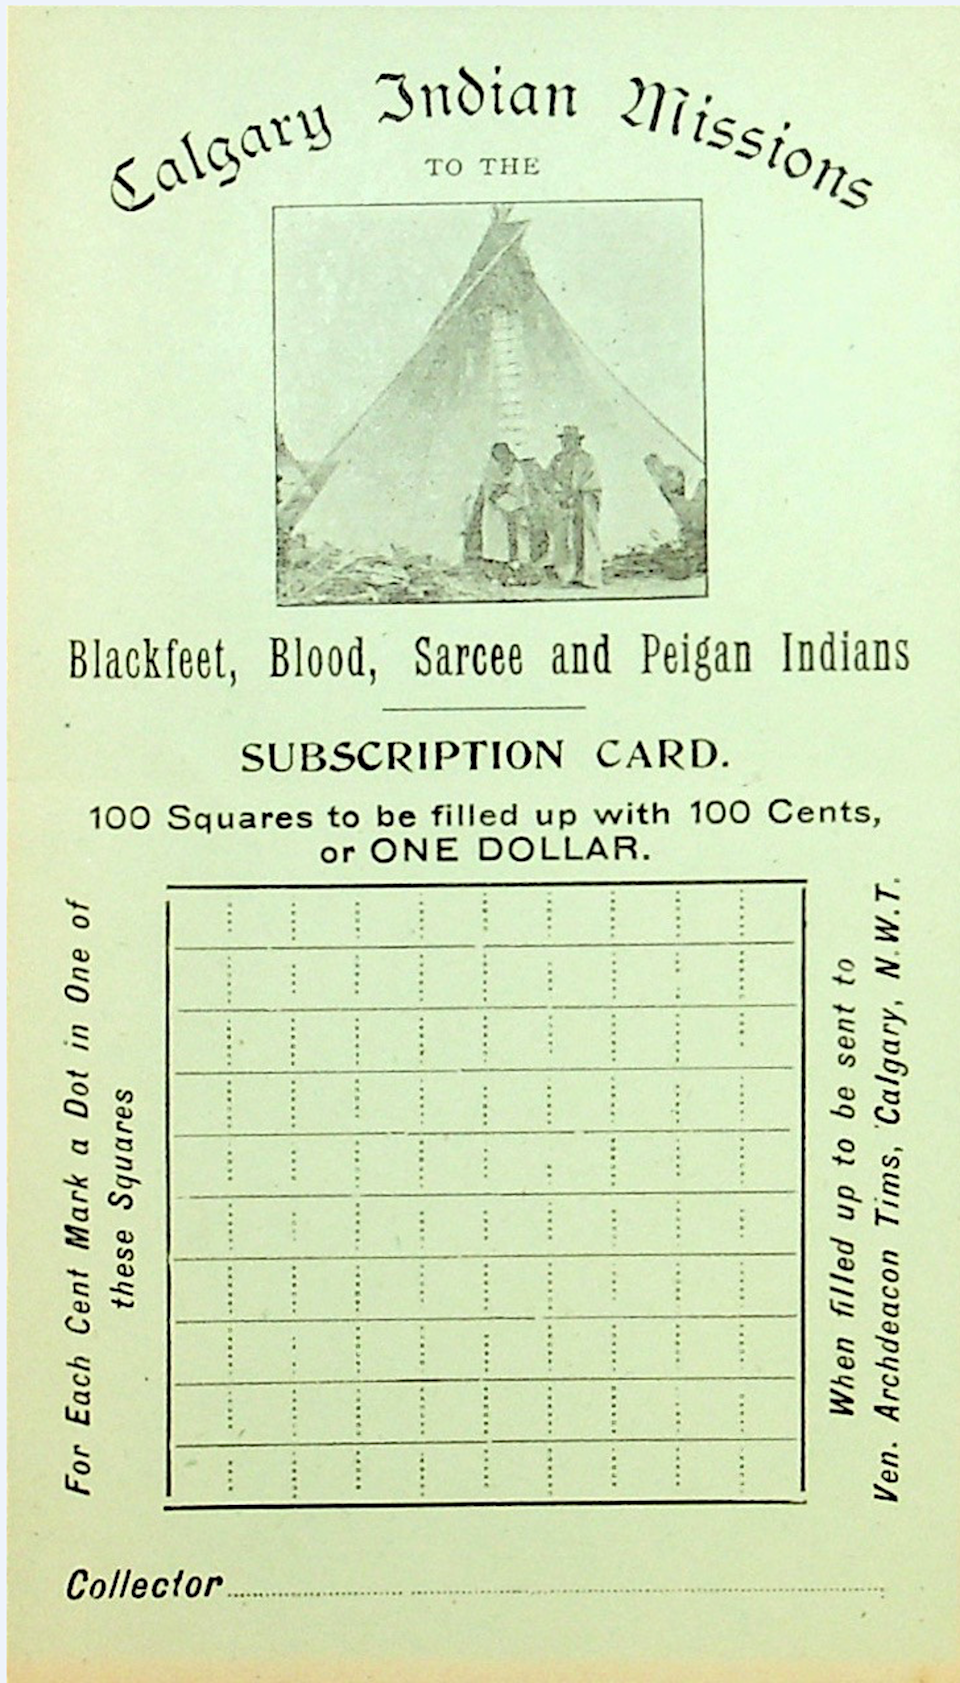 Card showing a photograph of a teepee with people in front and a grid with the words '100 squares to be filled up with 100 cents or one dollar.'